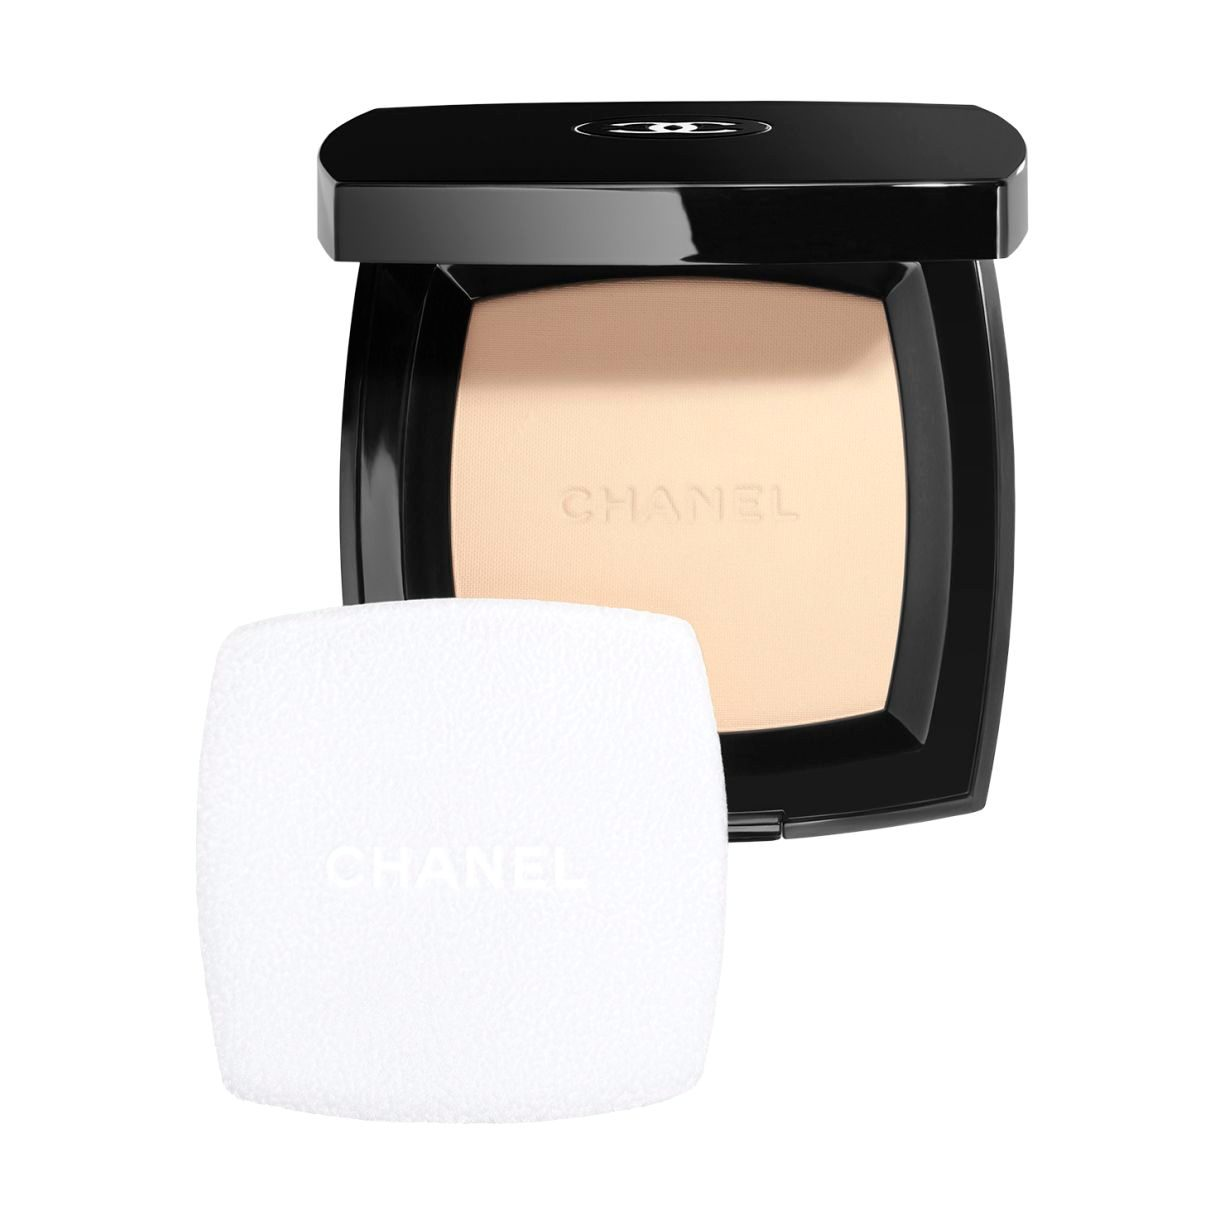 POUDRE UNIVERSELLE COMPACTE NATURAL FINISH PRESSED POWDER 20 - CLAIR - TRANSLUCENT 1